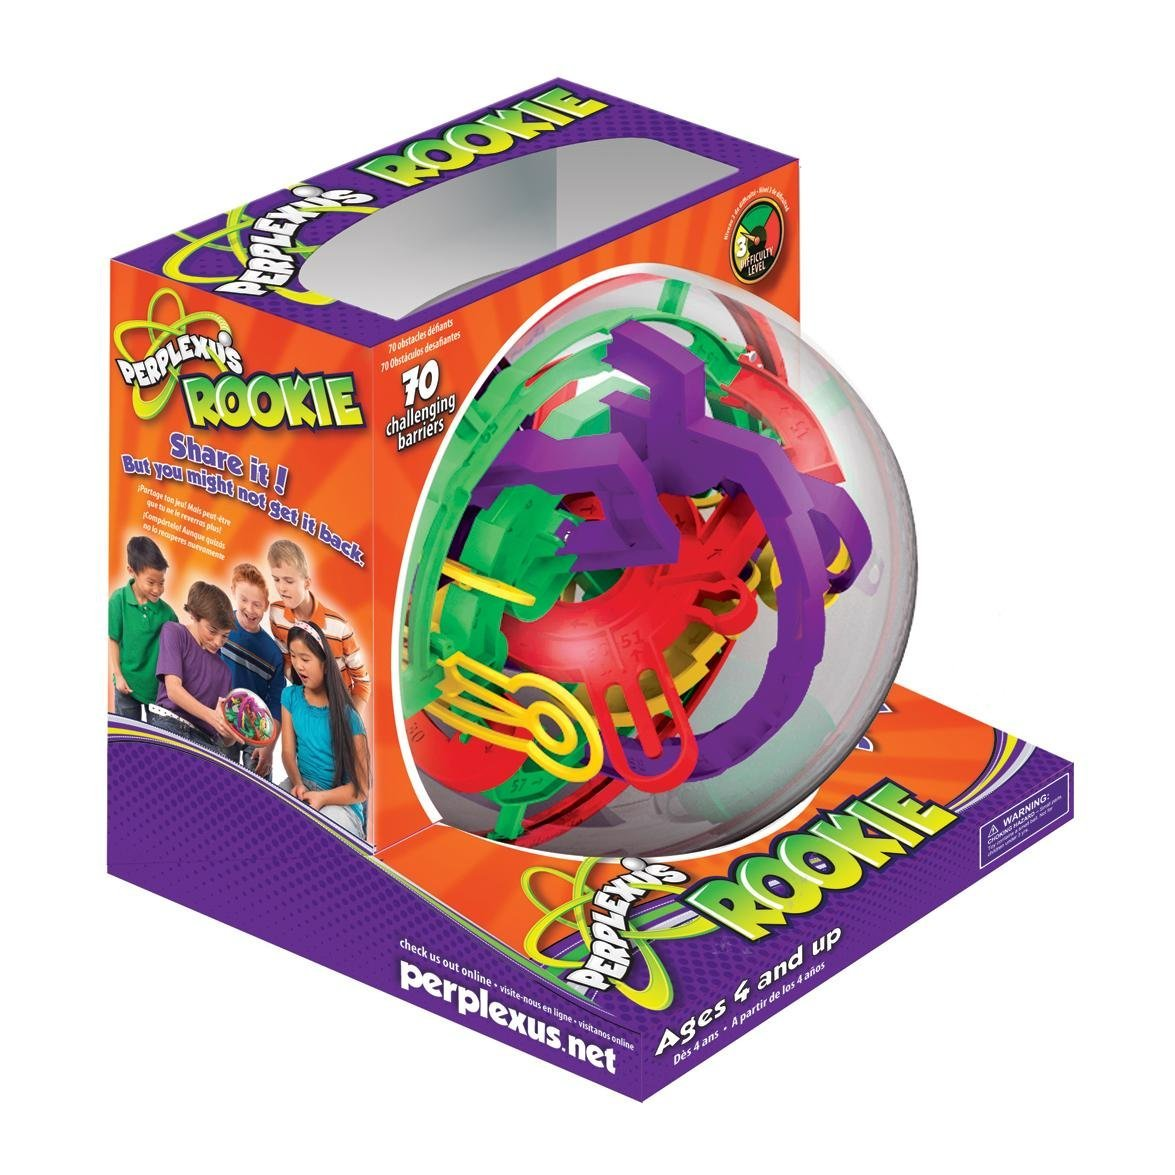 Rookies Coupons: Amazon: Perplexus Rookie Only $11.98 (Reg. $22.99)!